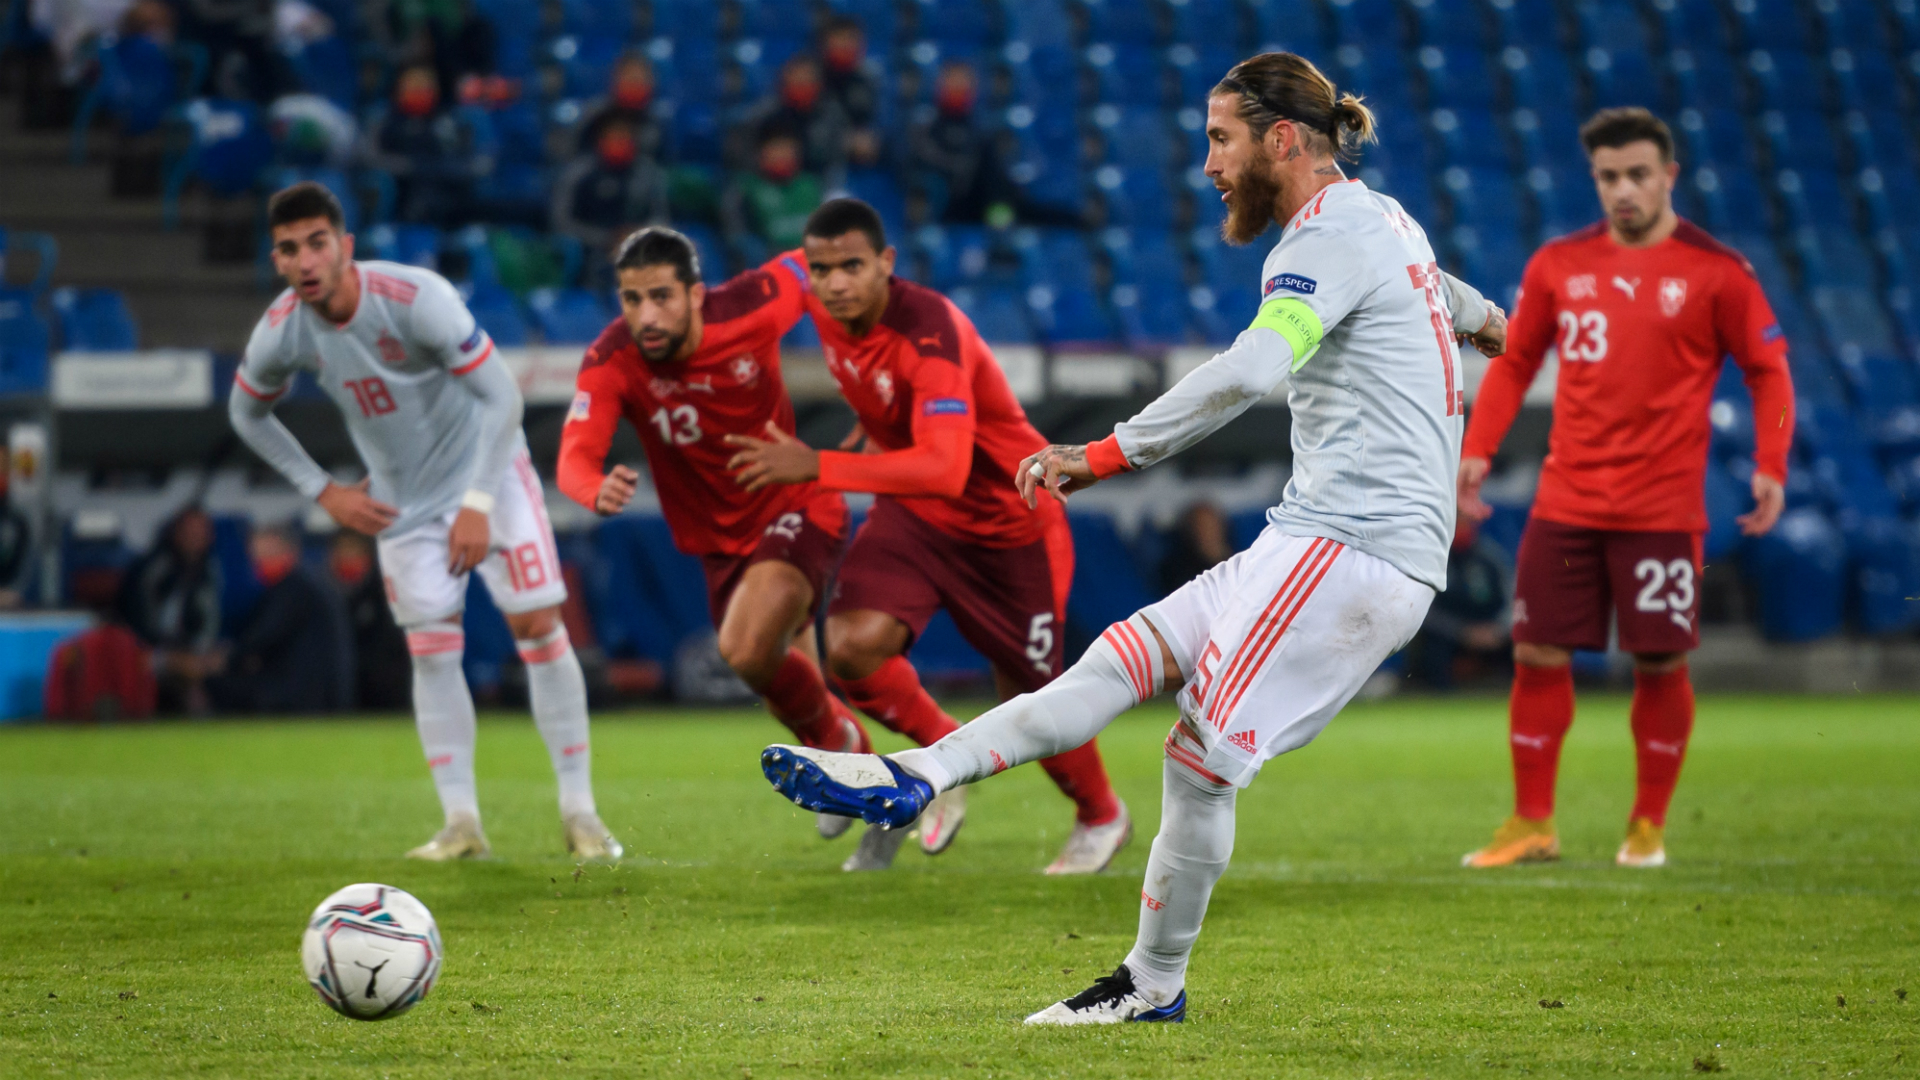 Spain Real Madrid captain Ramos becomes most capped European player ever